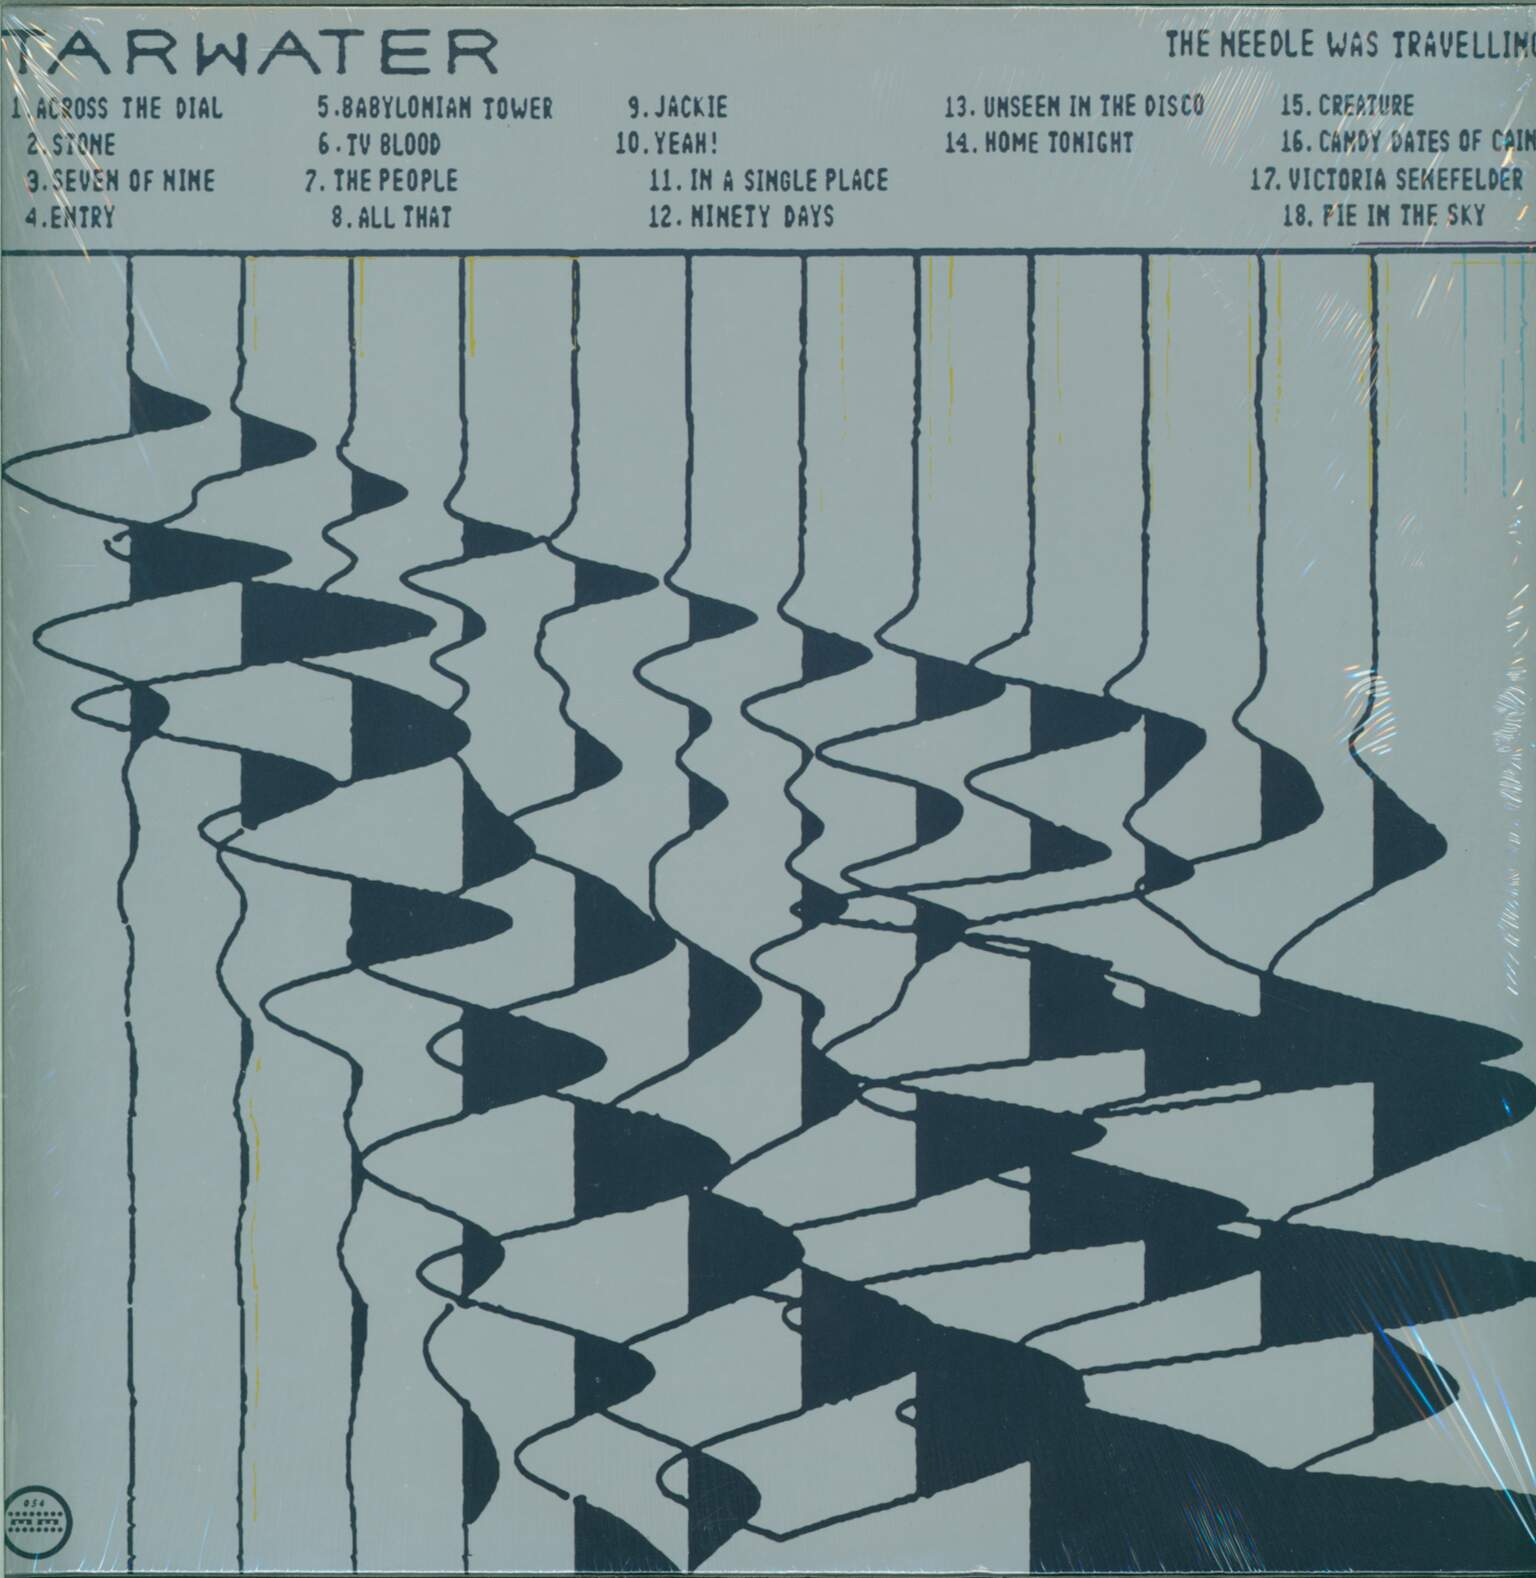 Tarwater: The Needle Was Travelling, 2×LP (Vinyl)